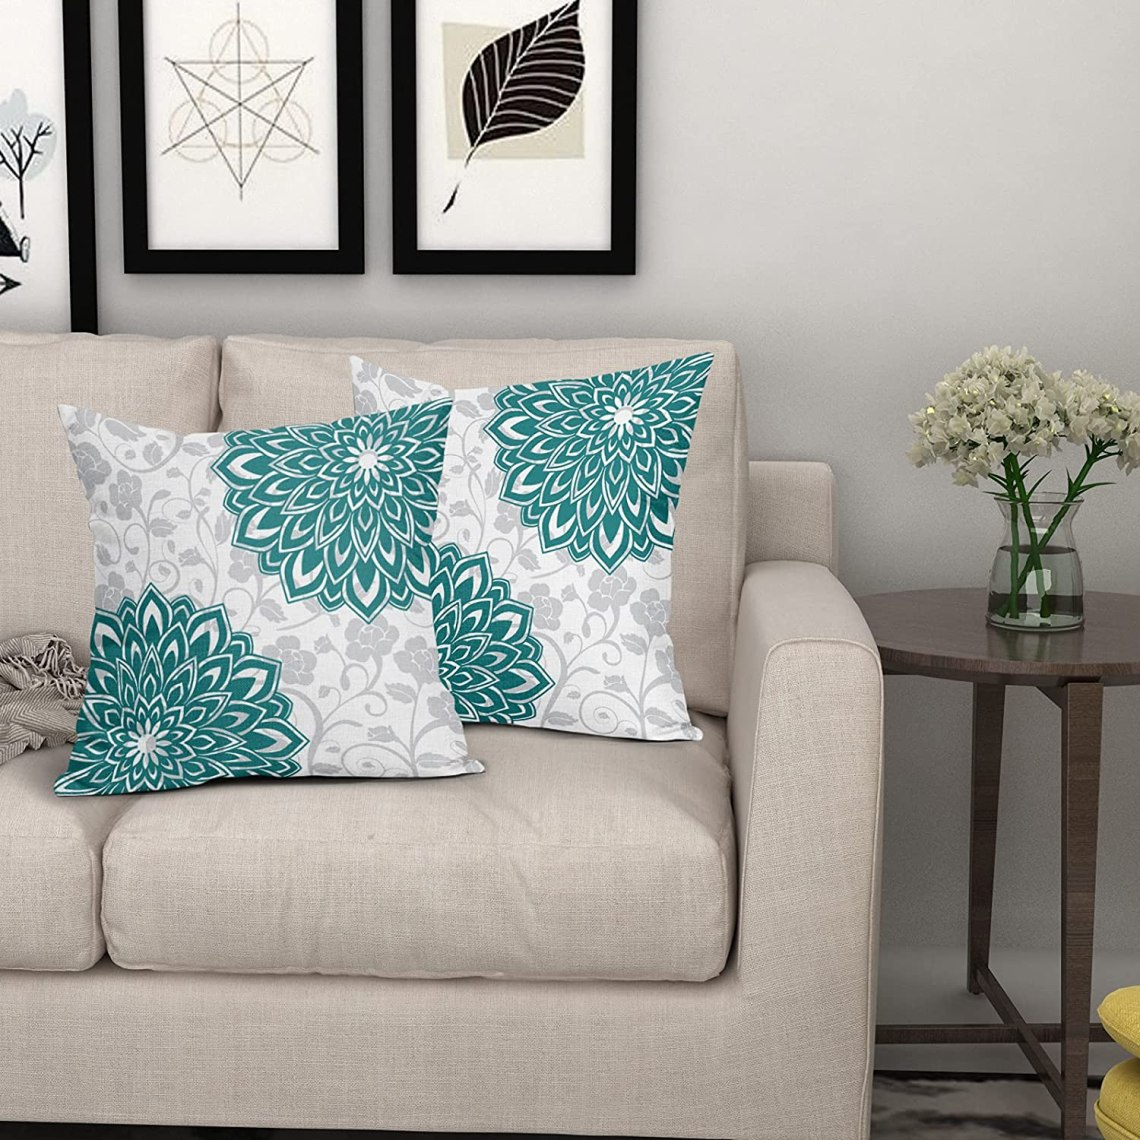 Buy Dahlia Pillow Covers Pack Of 2 18x18 Inch Teal Grey Turquoise Mandala Decorative Pillows Cover For Bedroom Living Room Decor Home Office Sofas Outdoor Decoration Linen Square Spring Flower Pillowscase Online